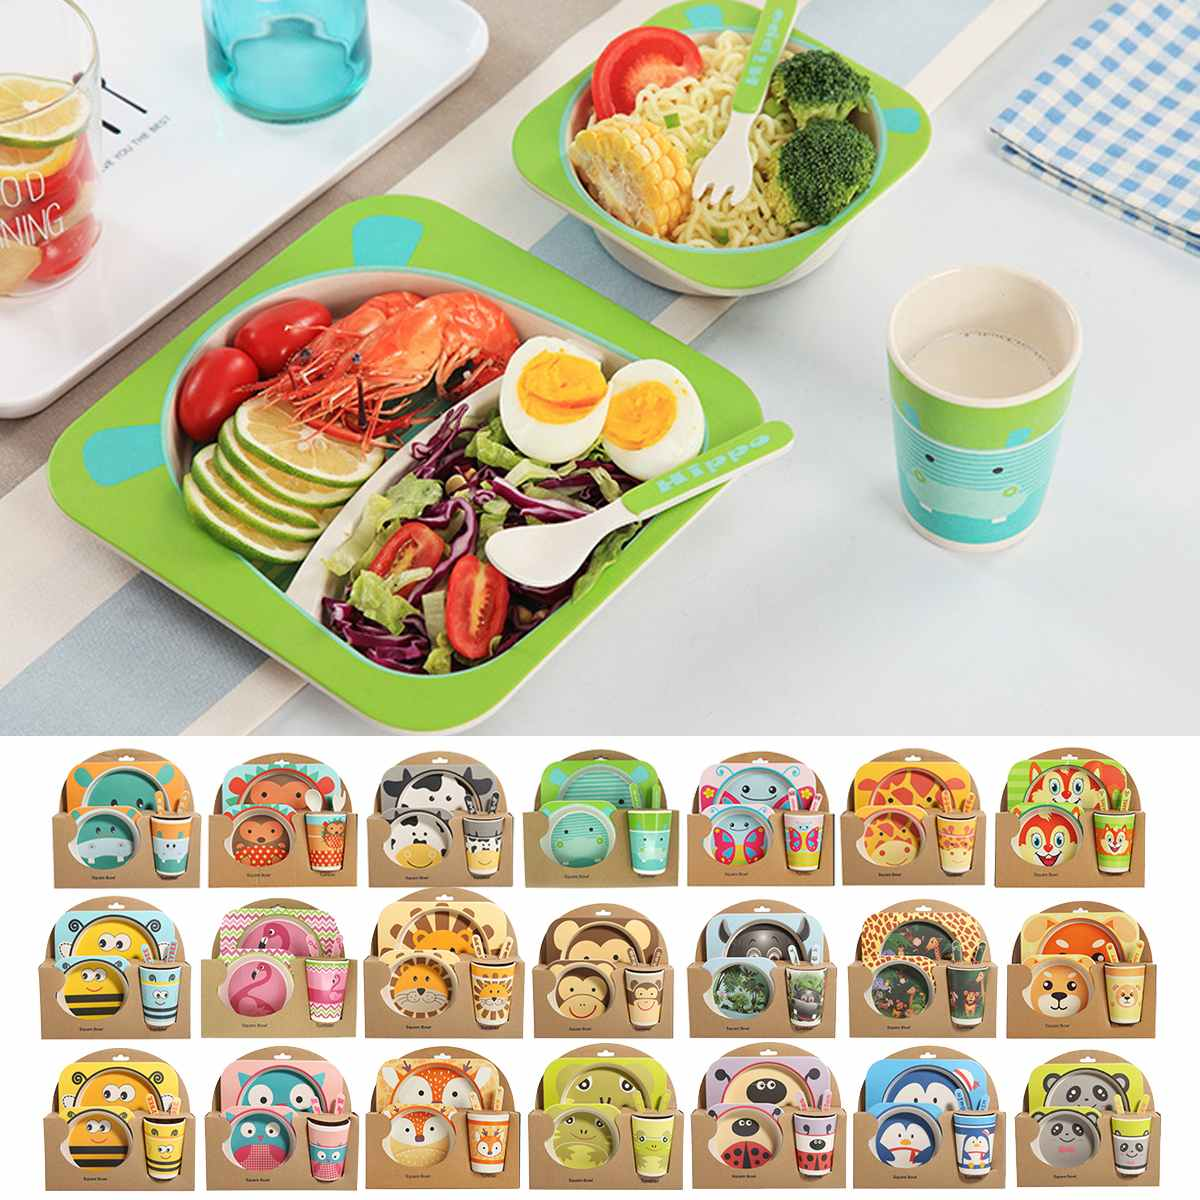 5Pcs/Set Baby Feeding Bowl Plate Dishes Fork Spoon Cup Children Tableware <font><b>Bamboo</b></font> Fiber <font><b>Kids</b></font> Cartoon Separation Feeding Plate image